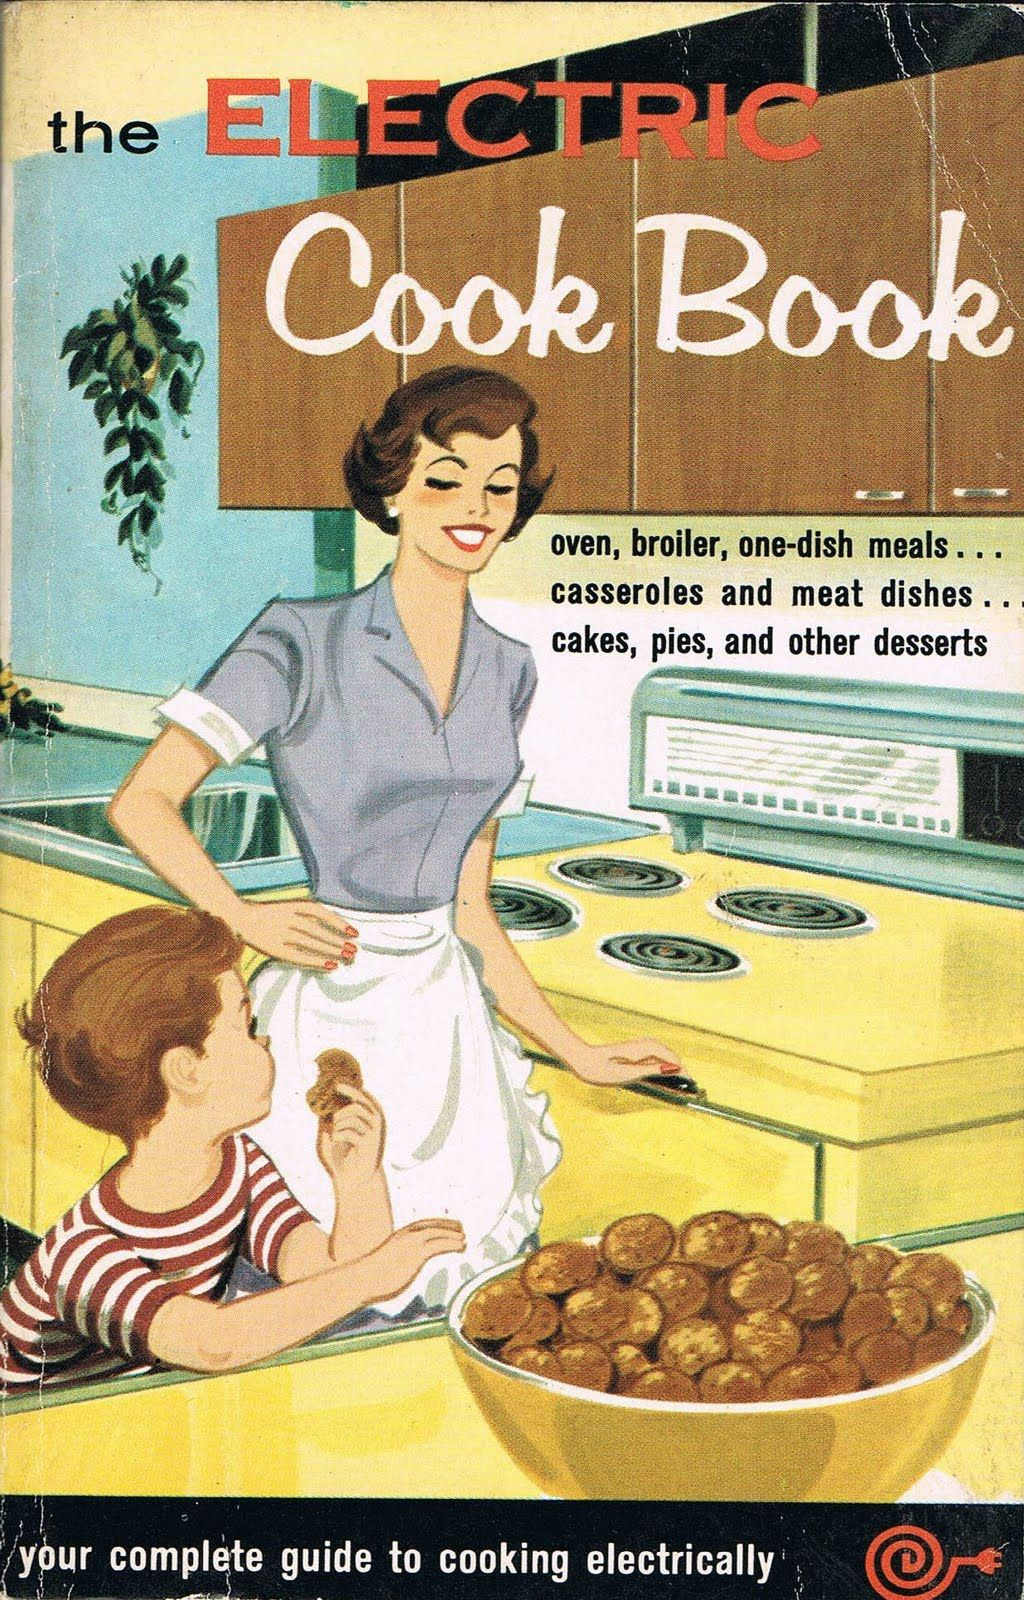 1950's cookbooks Mom had an electric stove like that!